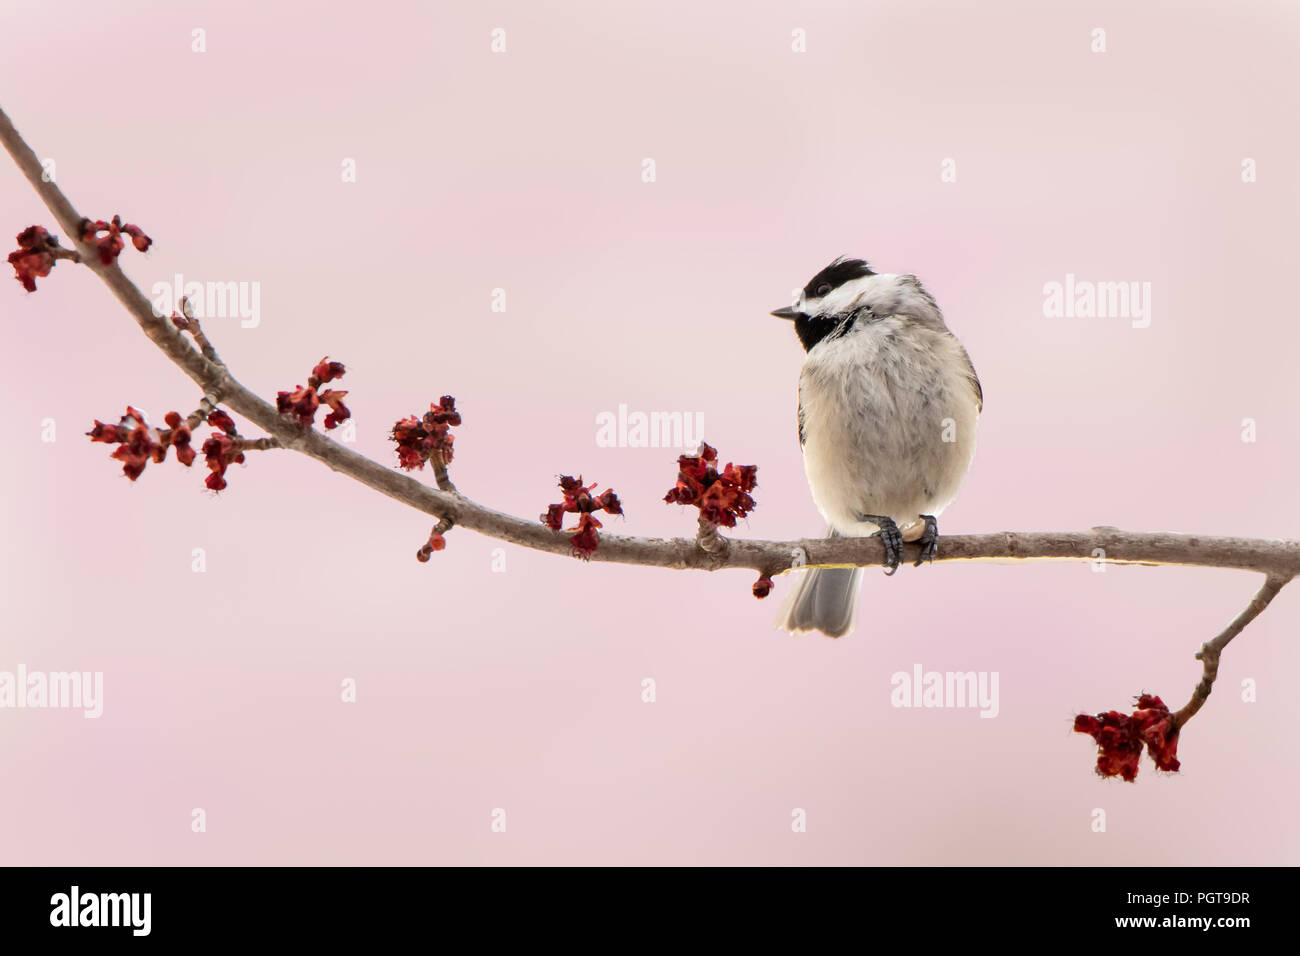 Carolina Chickadee on a Branch of Spring Flowers Against a Pink Background - Stock Image